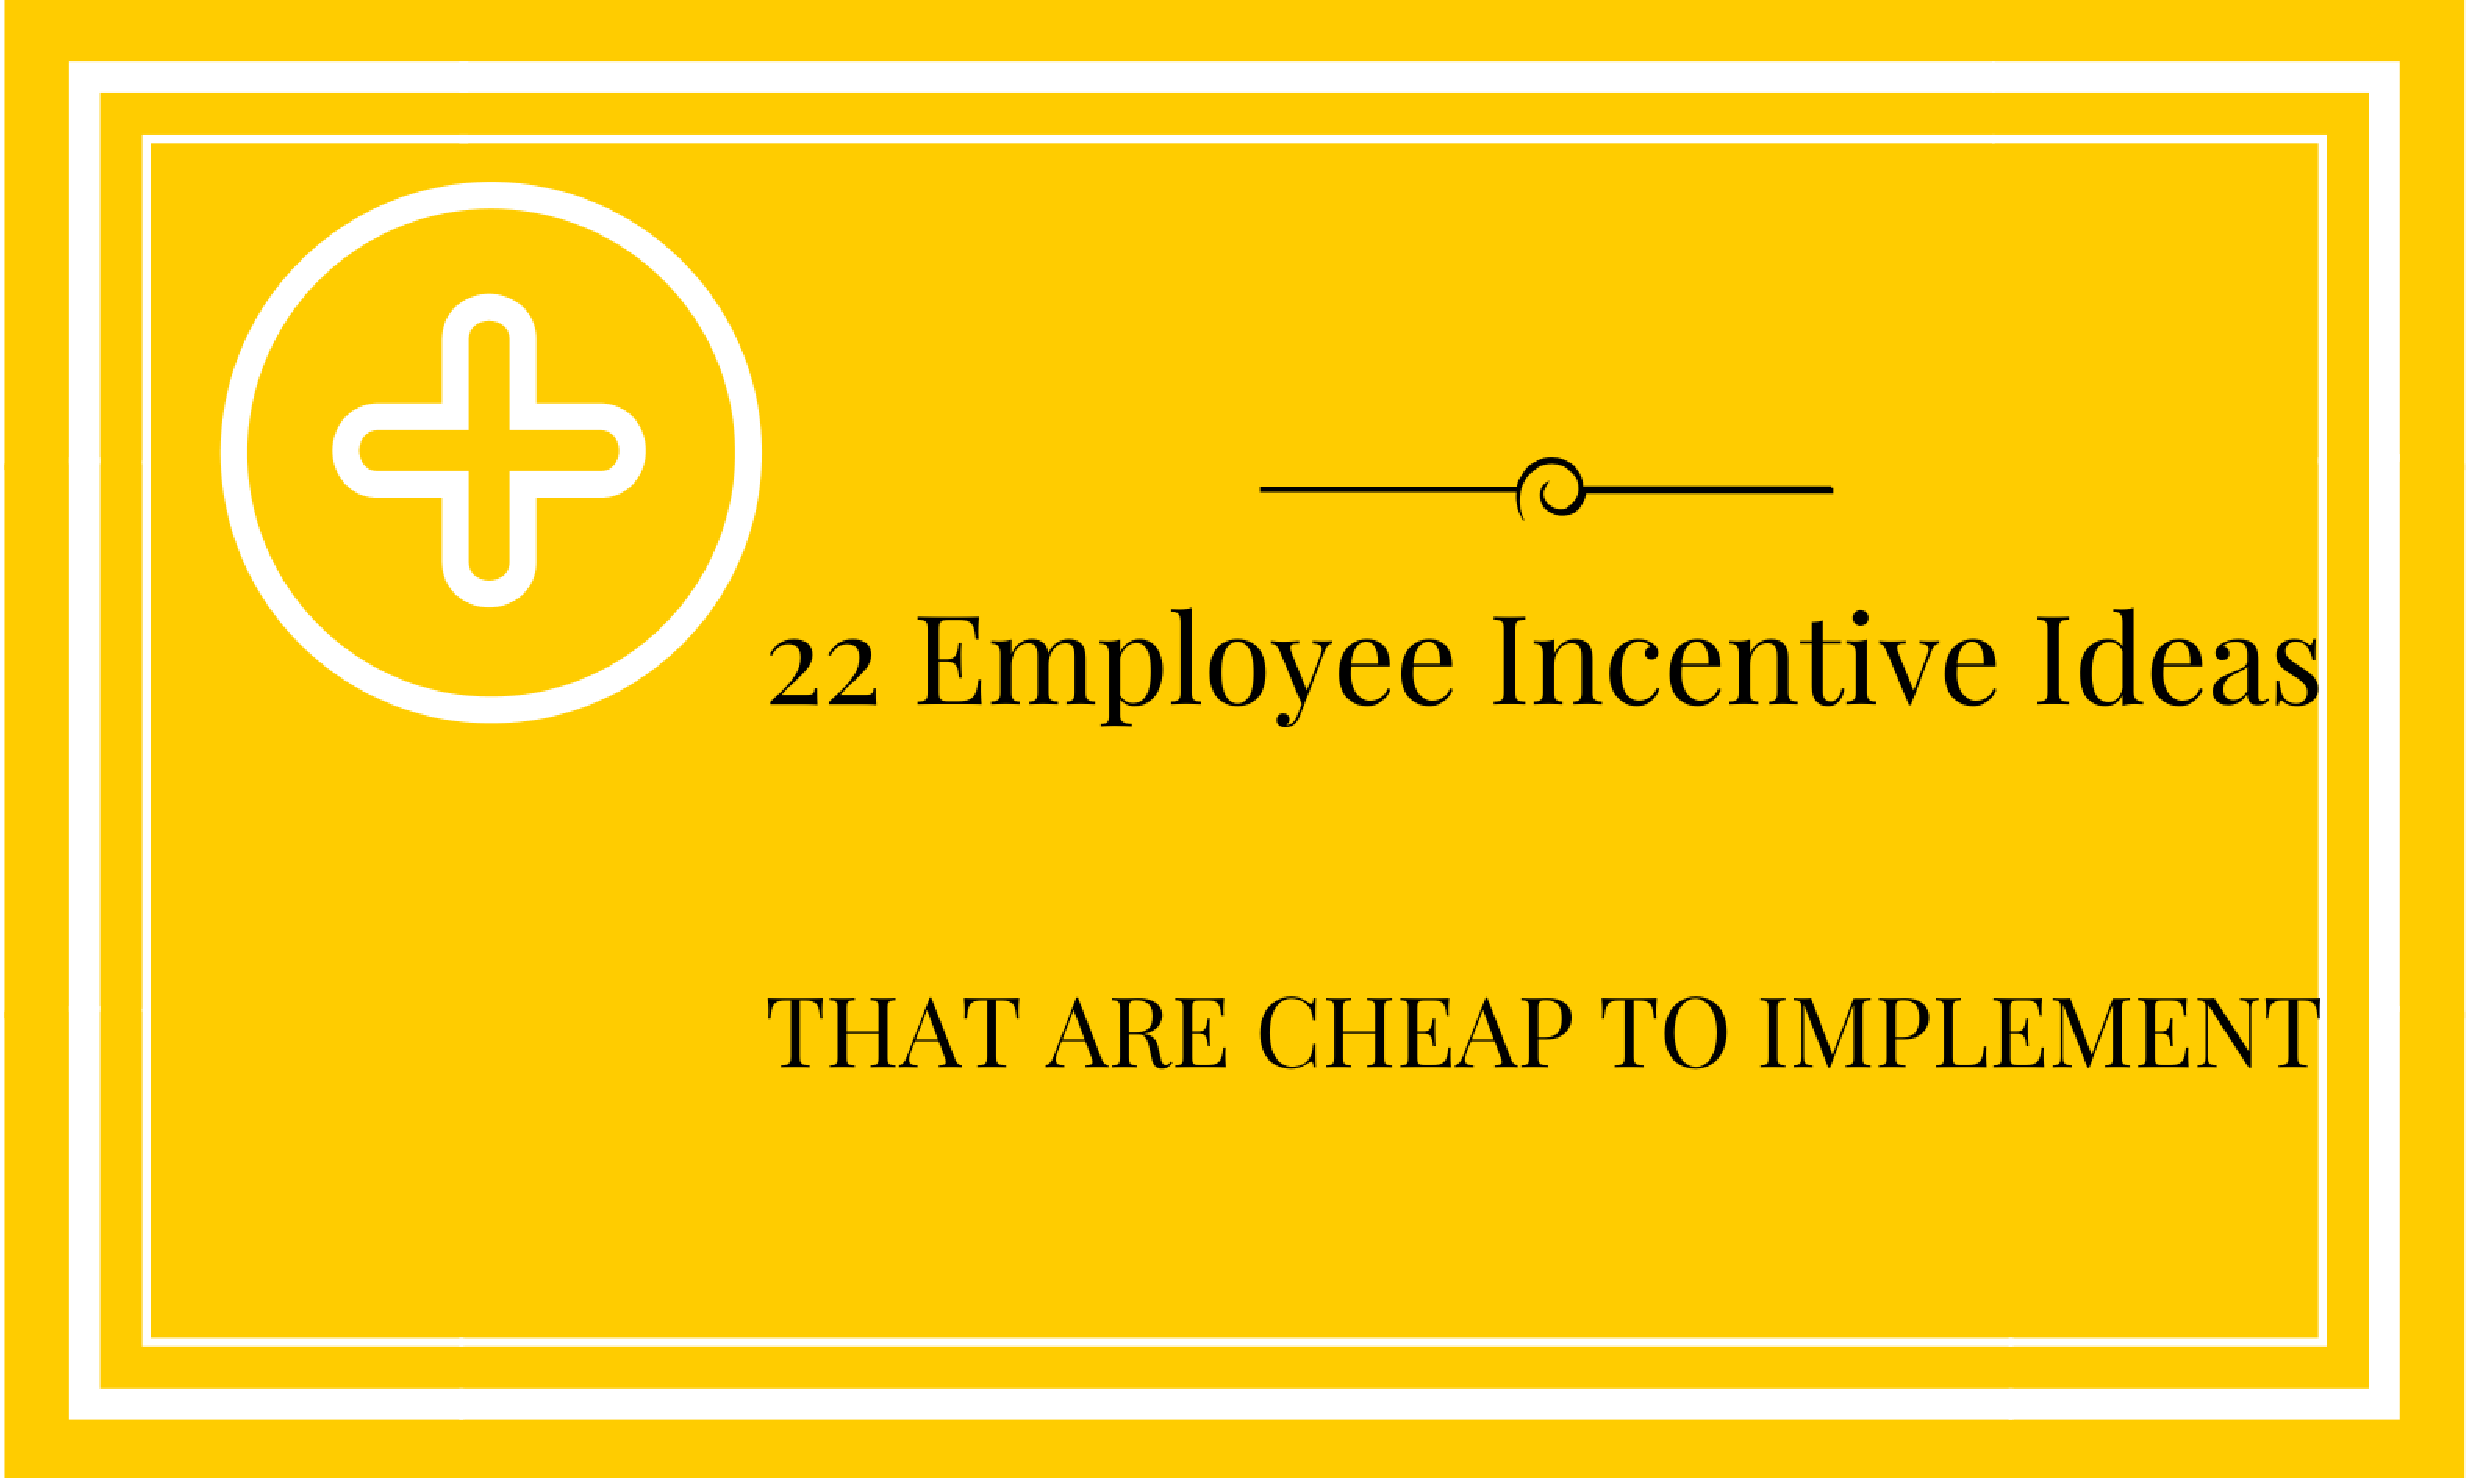 22 employee incentive ideas that are cheap to implement